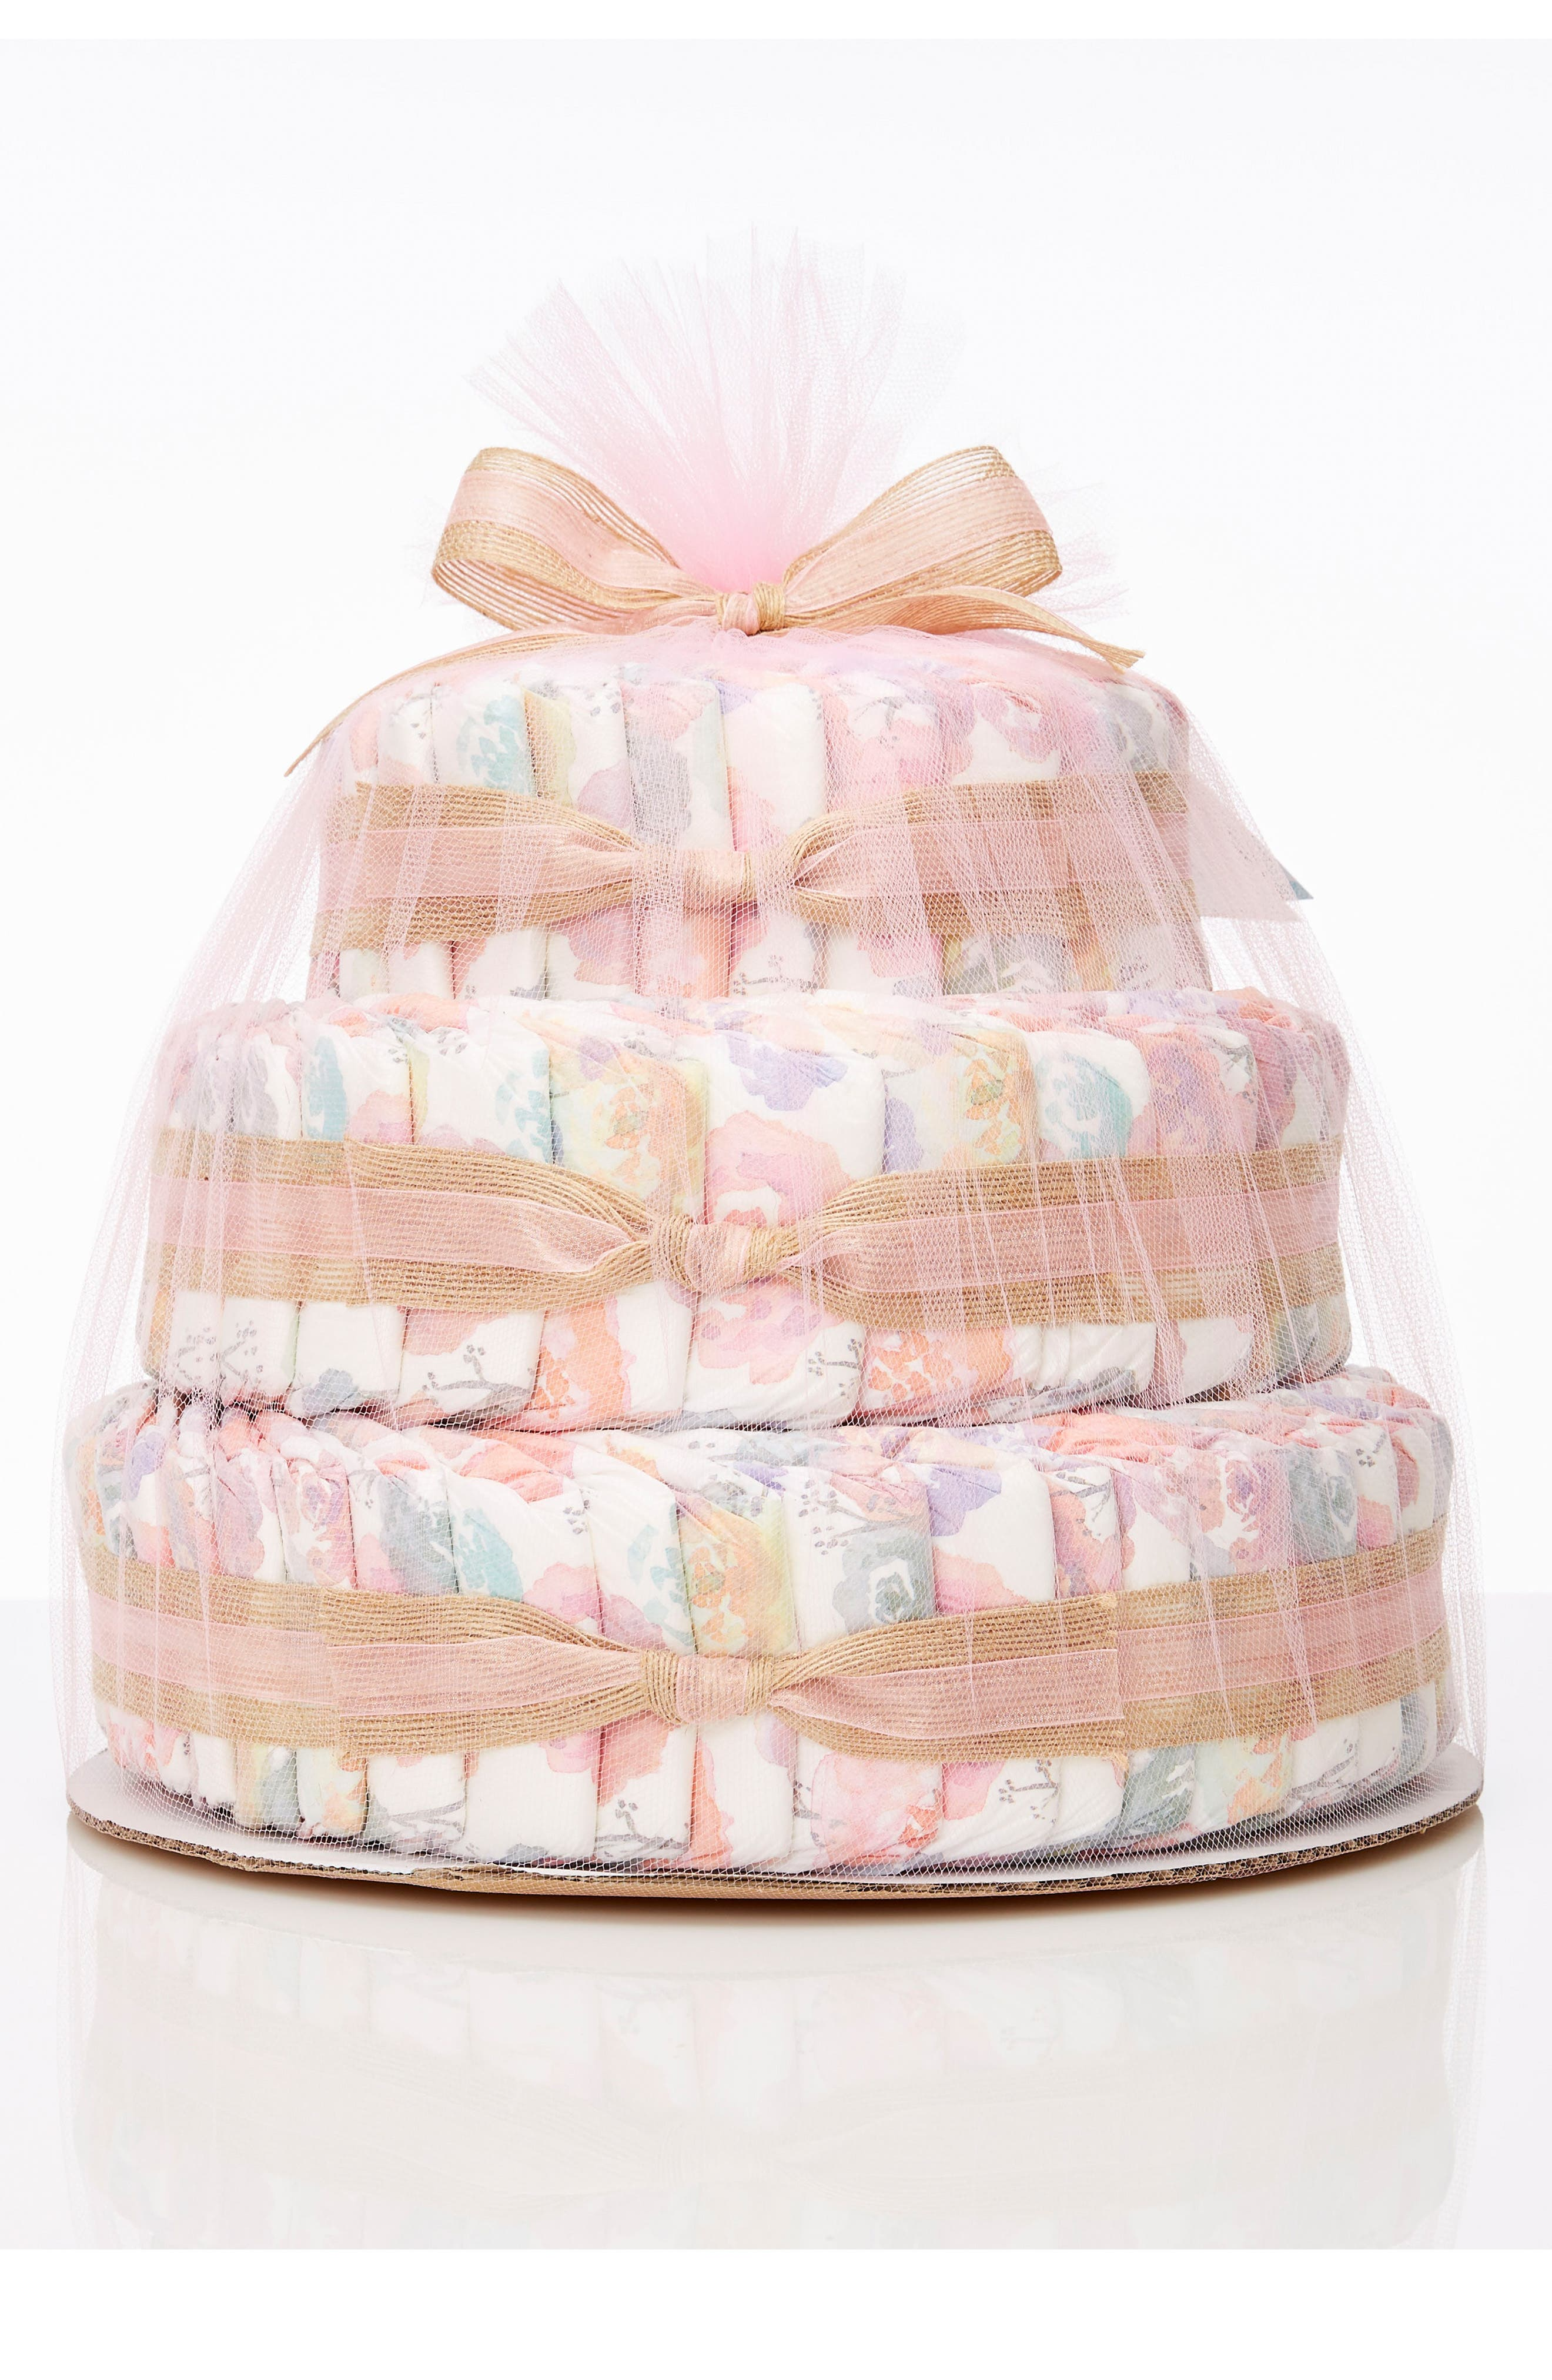 Alternate Image 1 Selected - The Honest Company Large Diaper Cake & Full-Size Essentials Set